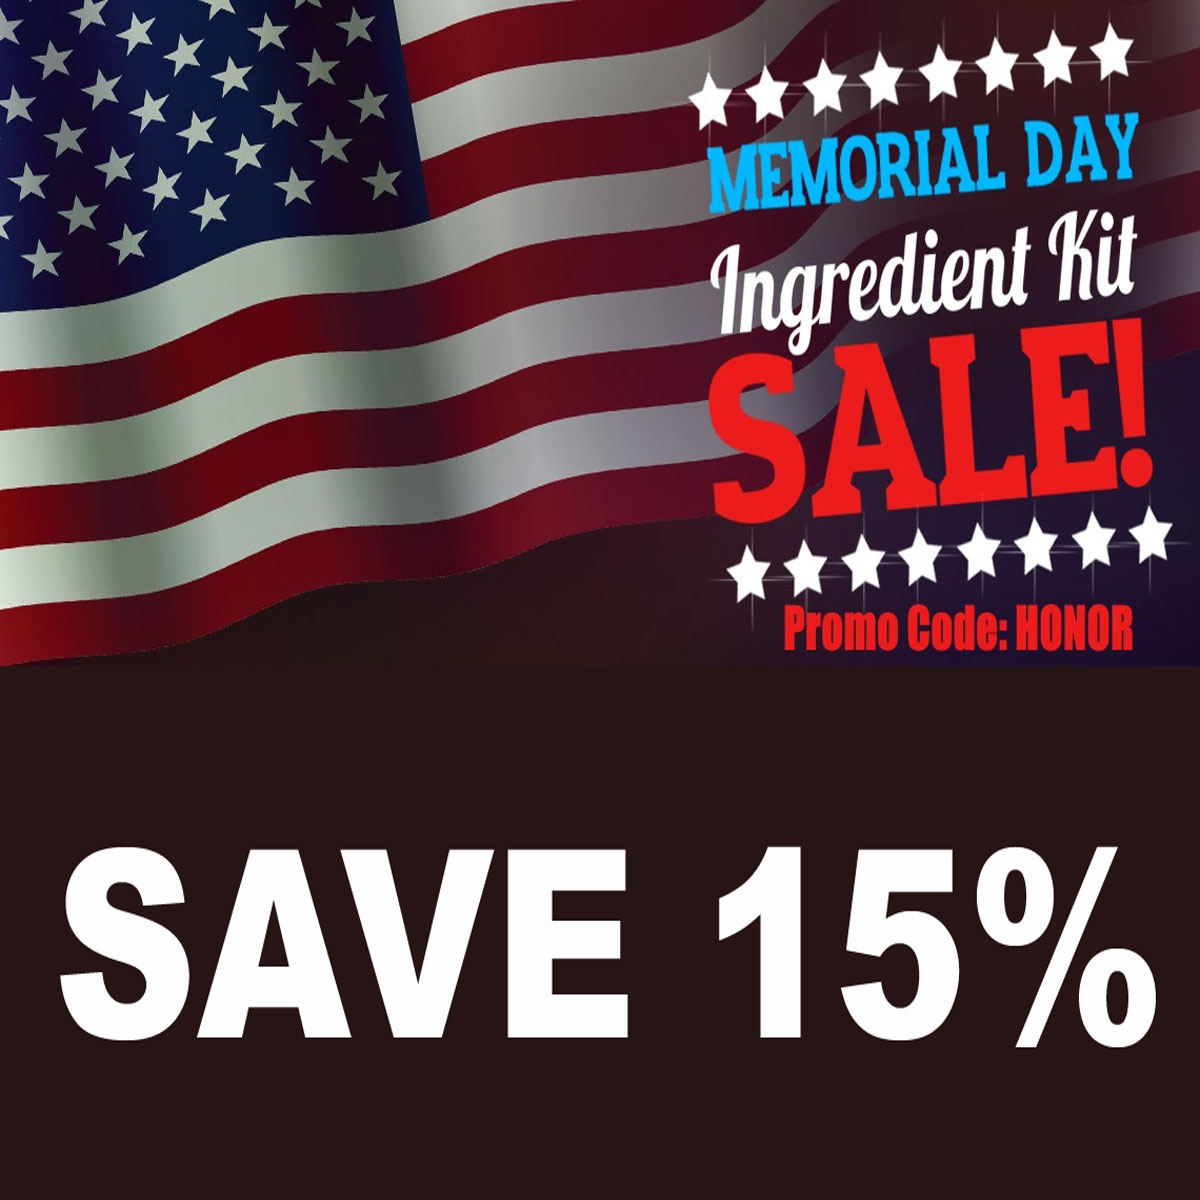 Save 15% On American Style Beer Kits at More Beer! Coupon Code